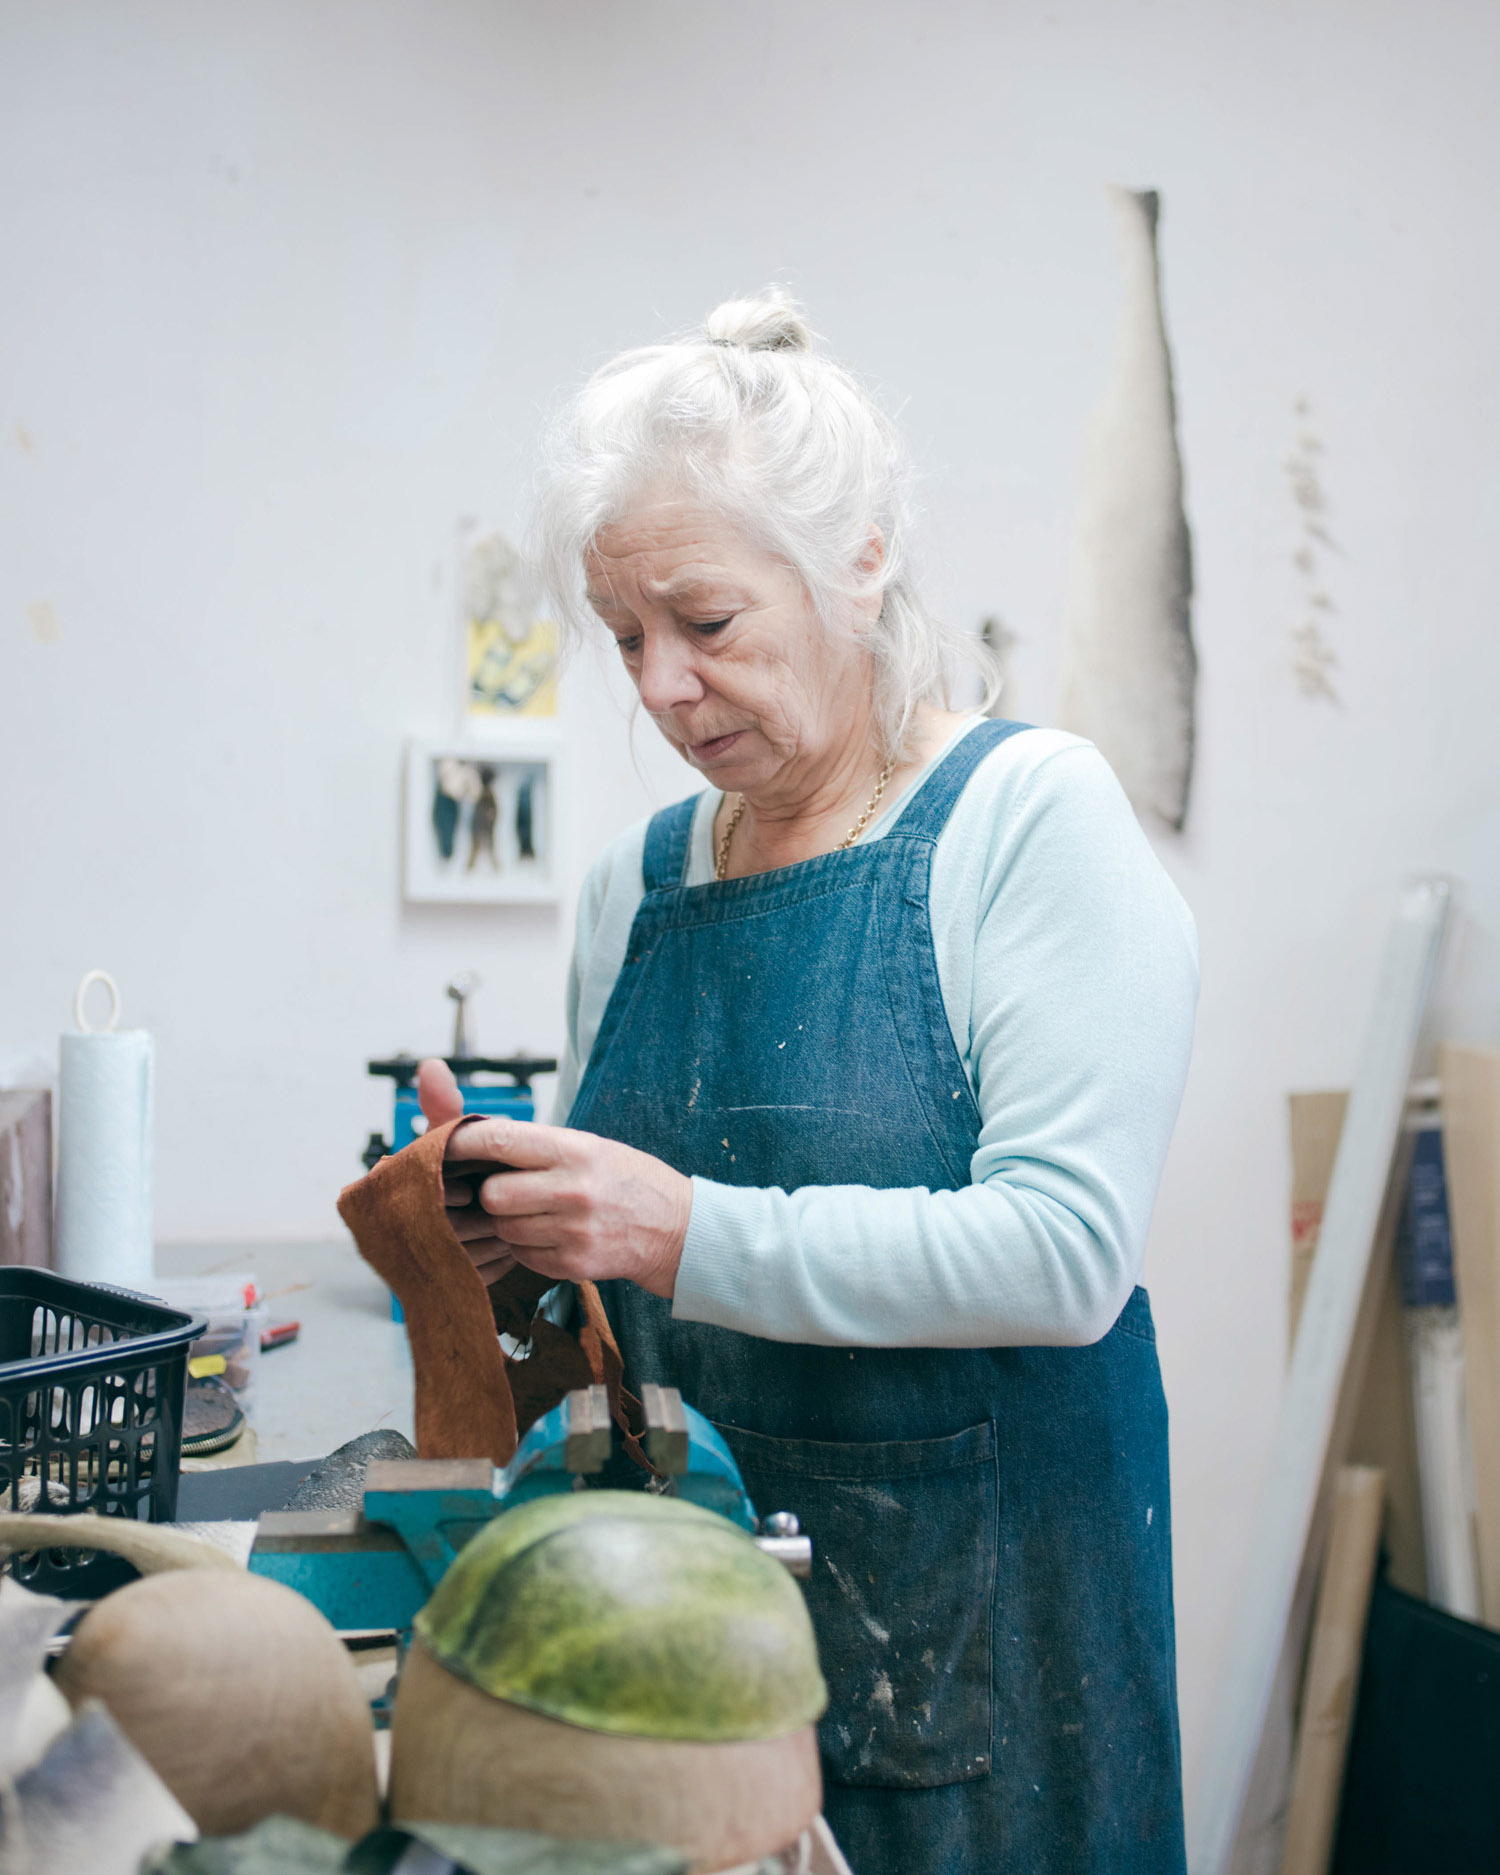 Kari working in her Devon based studio.